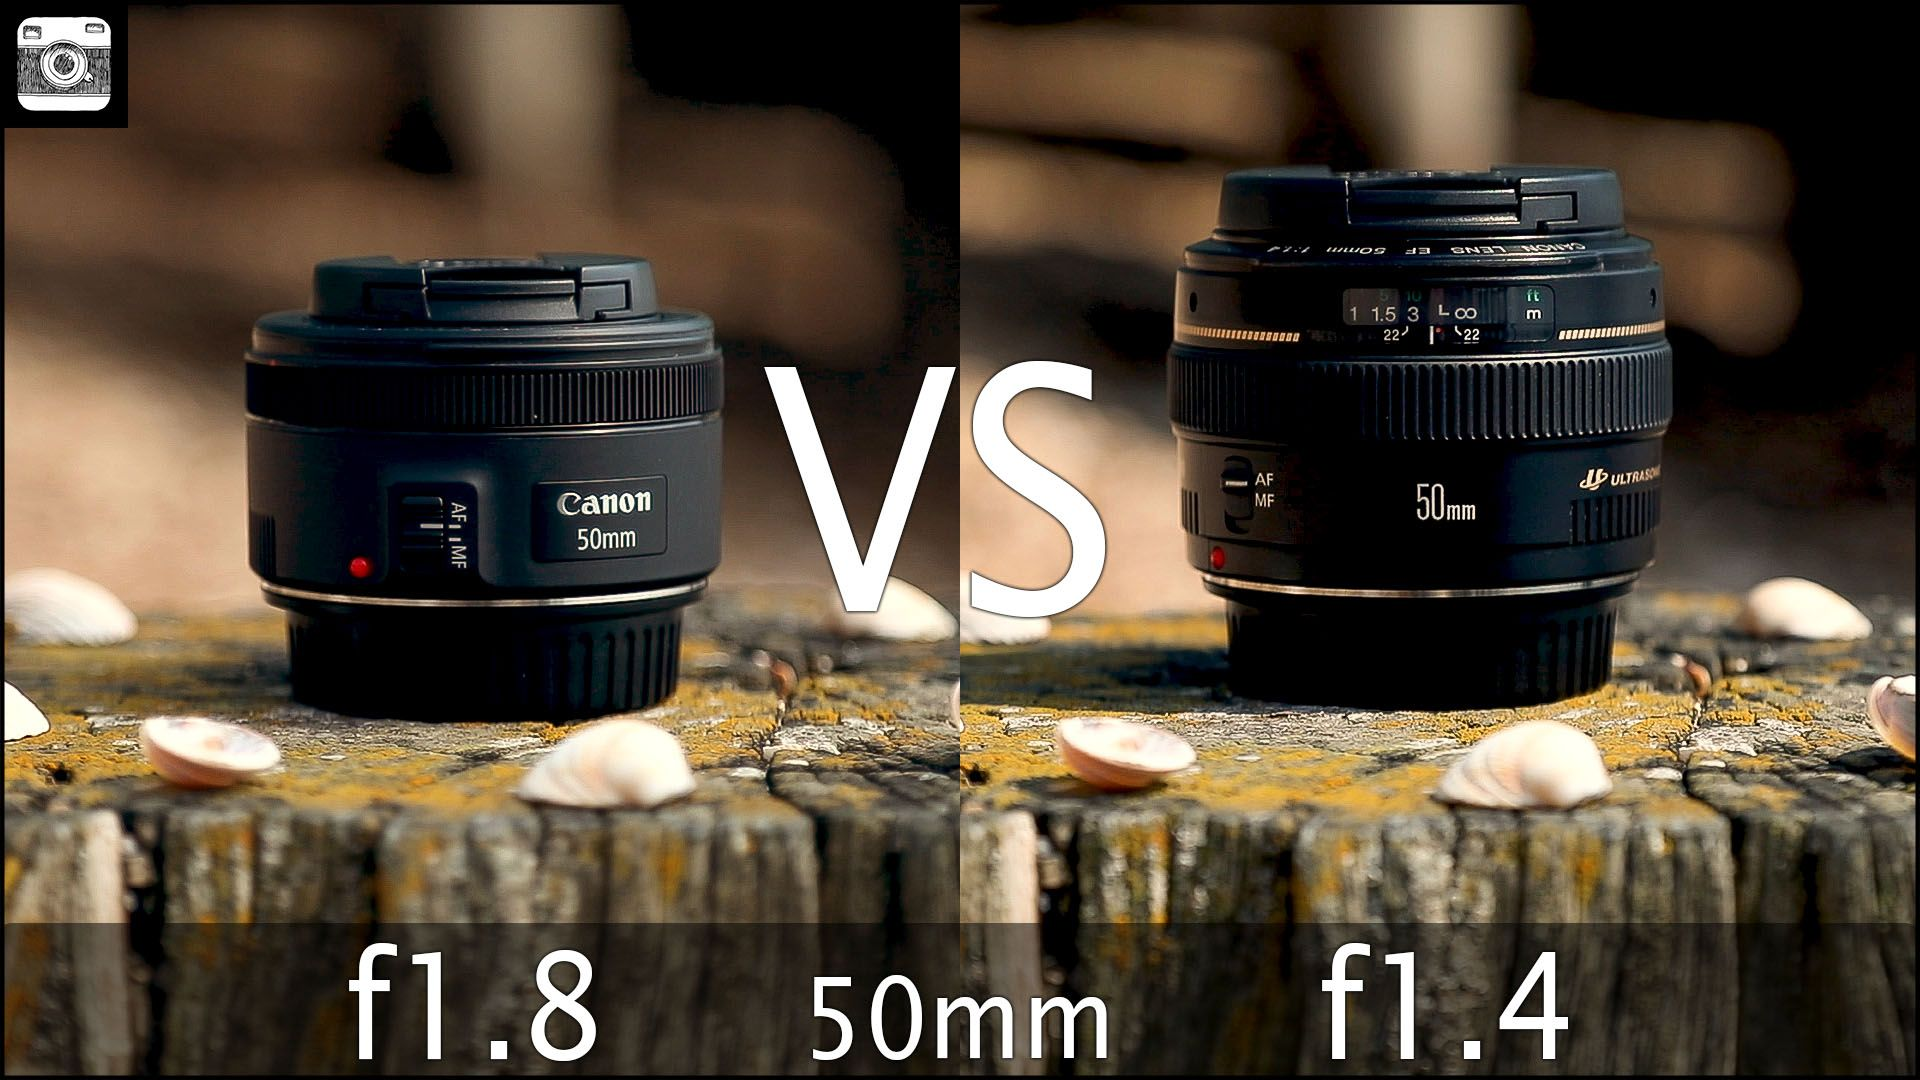 In This Video We Ll Be Putting The Canon F1 4 50mm Lens Against The Canon F1 8 50mm Lens 50mm Photography 50mm Lens Photography Canon 50mm Lens Photography